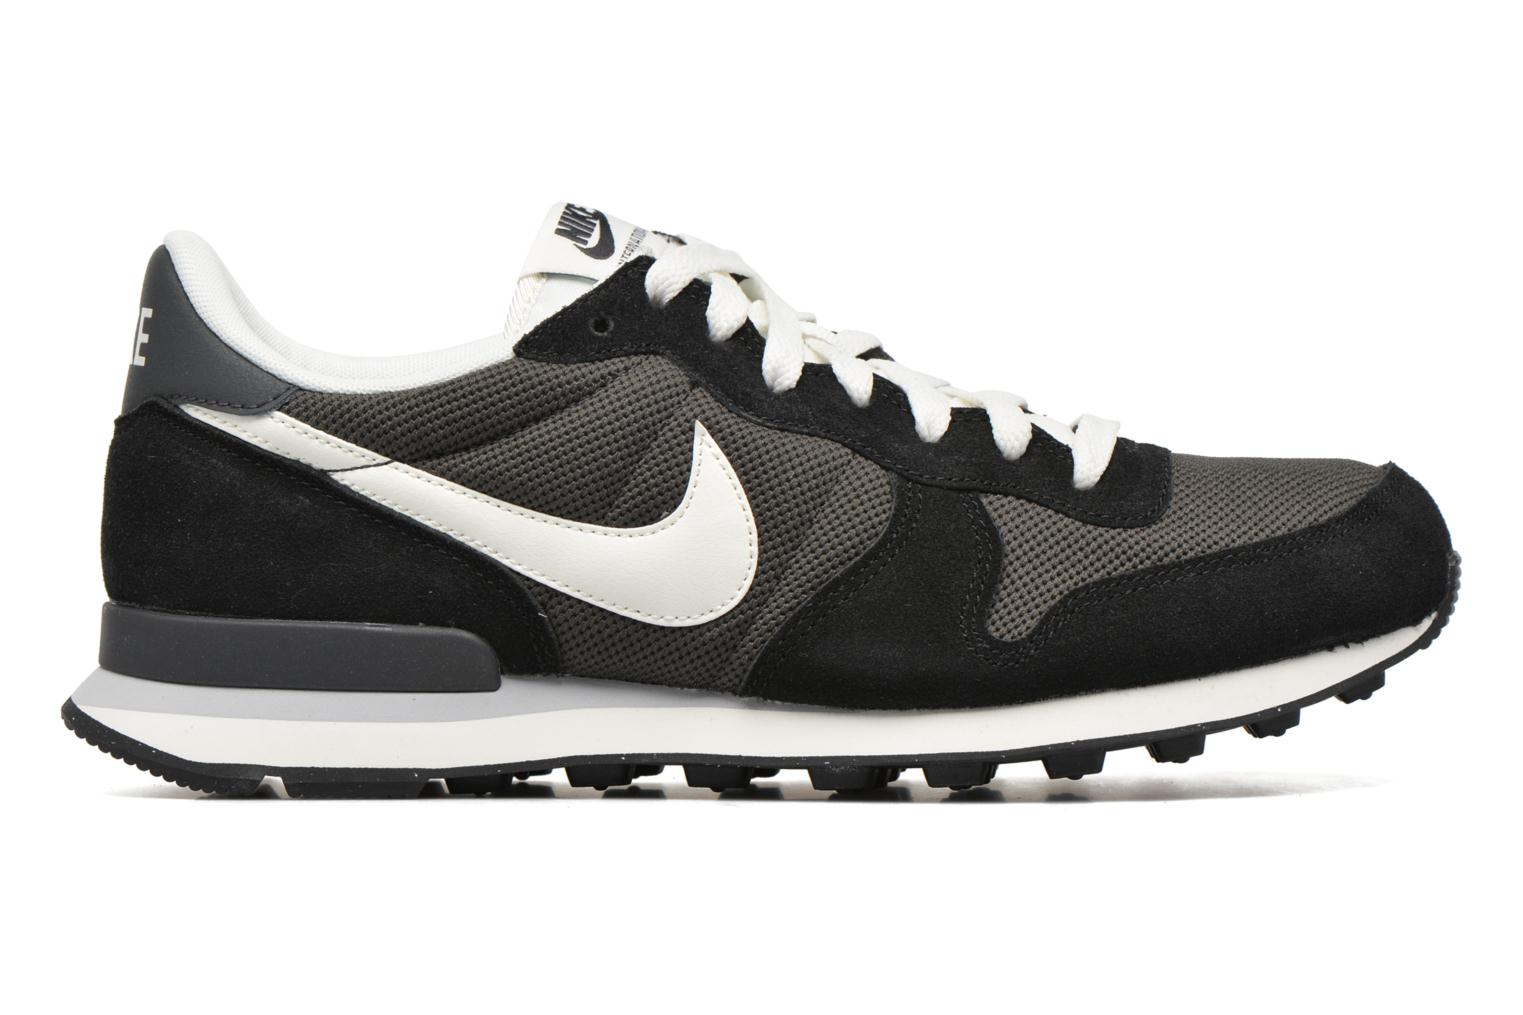 Nike Internationalist Deep Pewter/Sail-Black-Anthracite